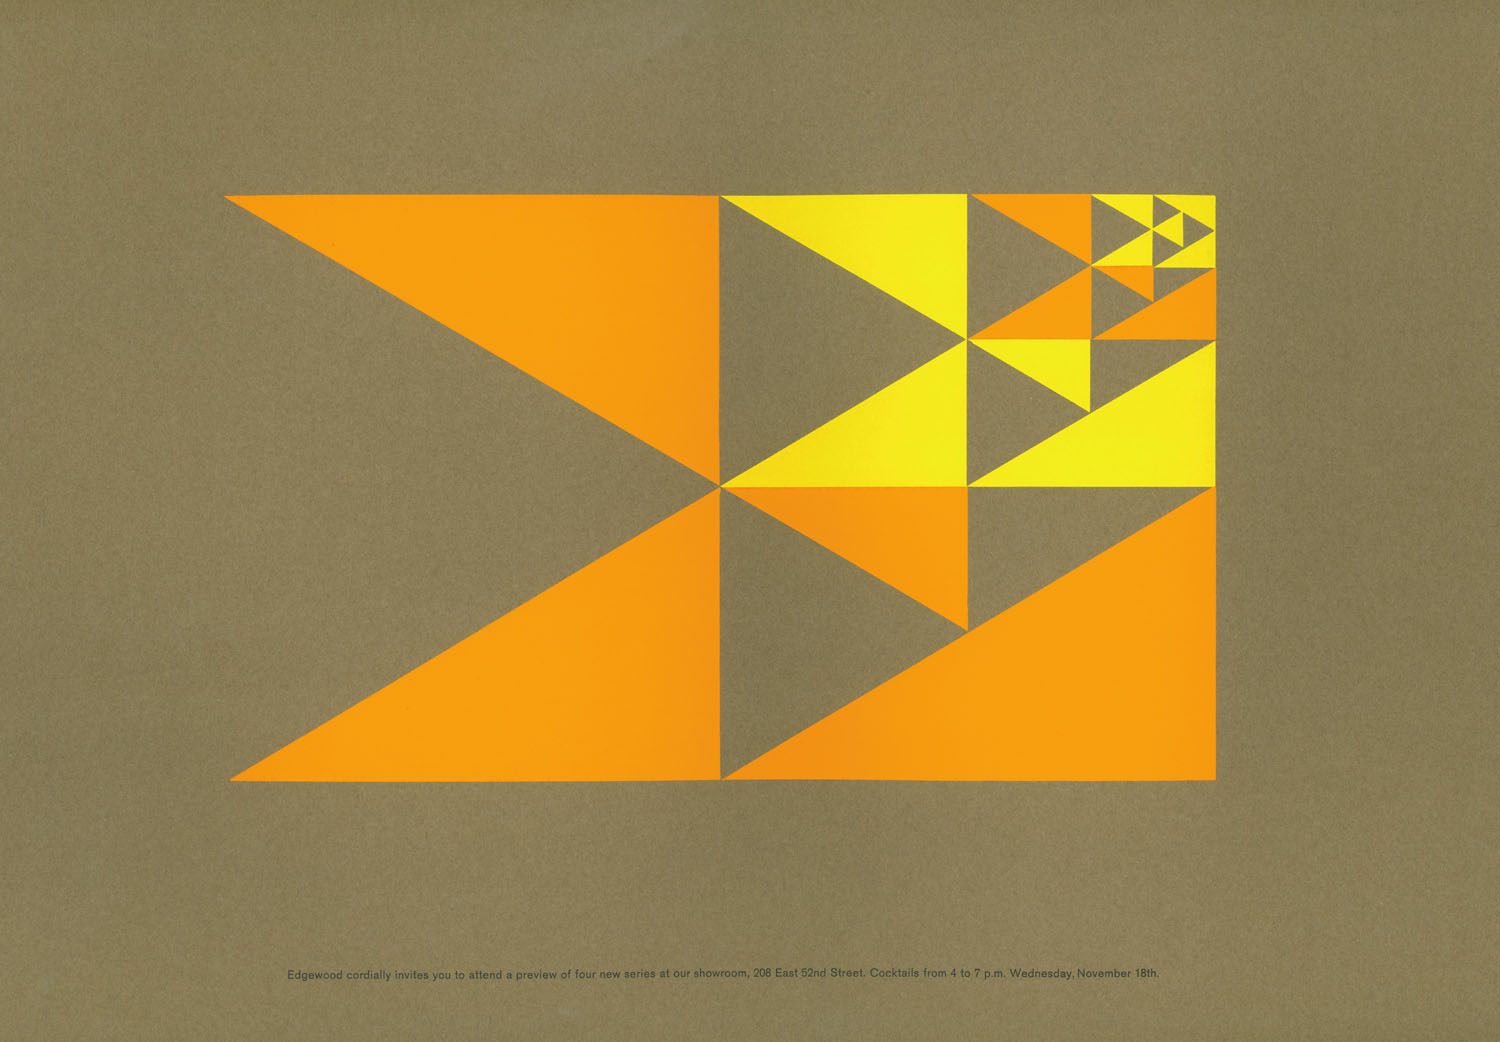 Orange and yellow graphic made up of triangles against brown background.